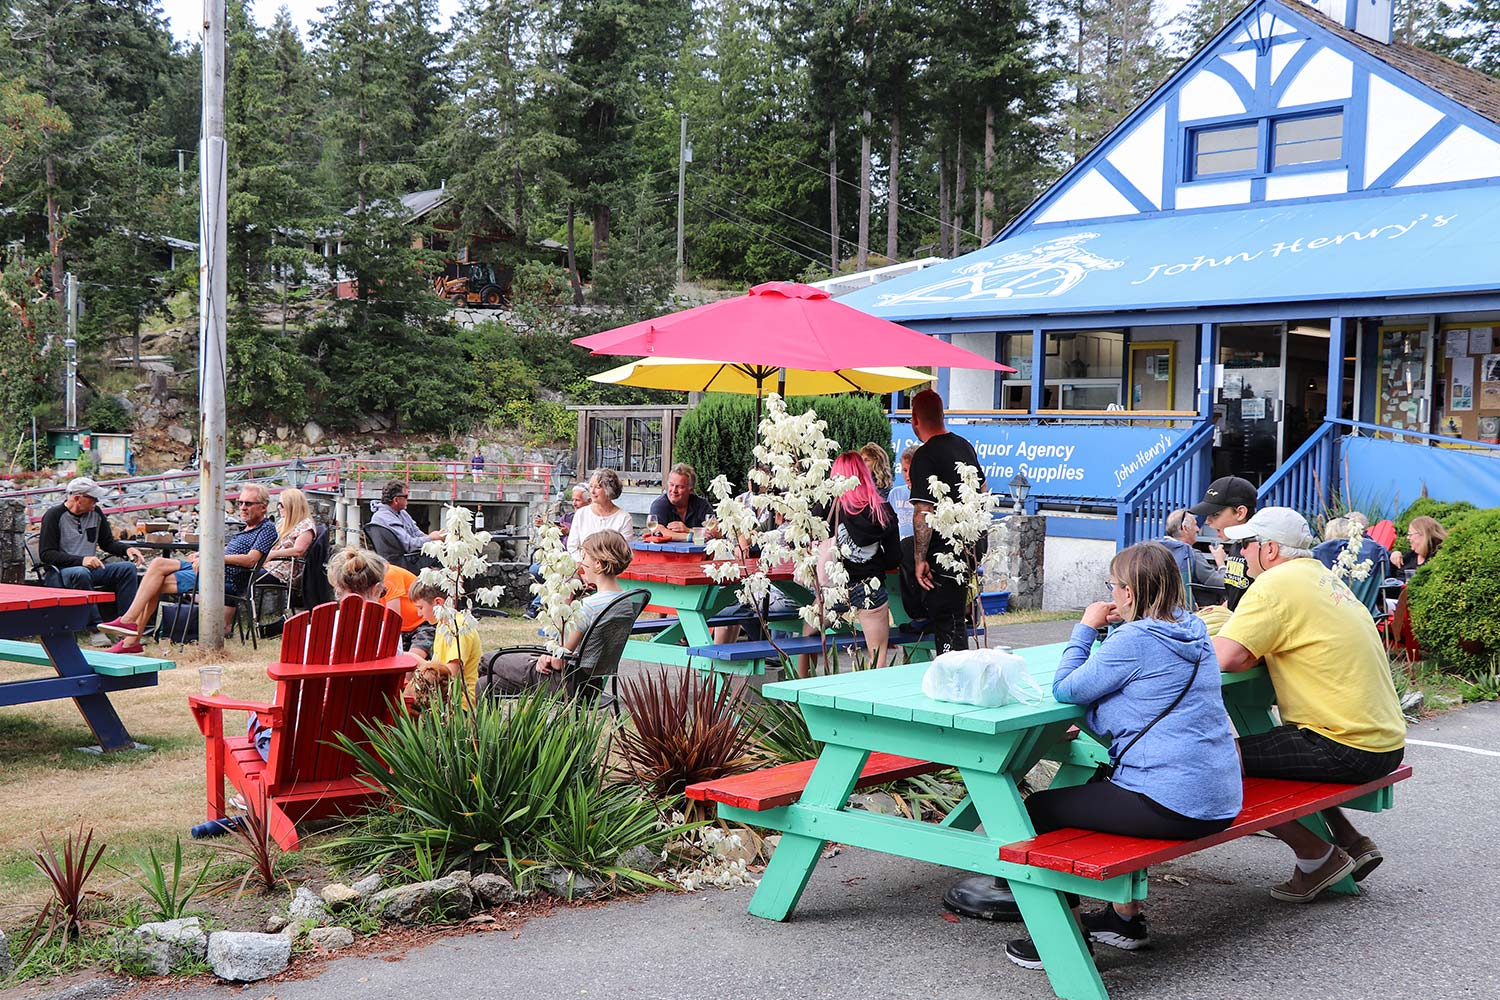 Customers enjoy an outdoor concert in front of the general store at John Henry's.